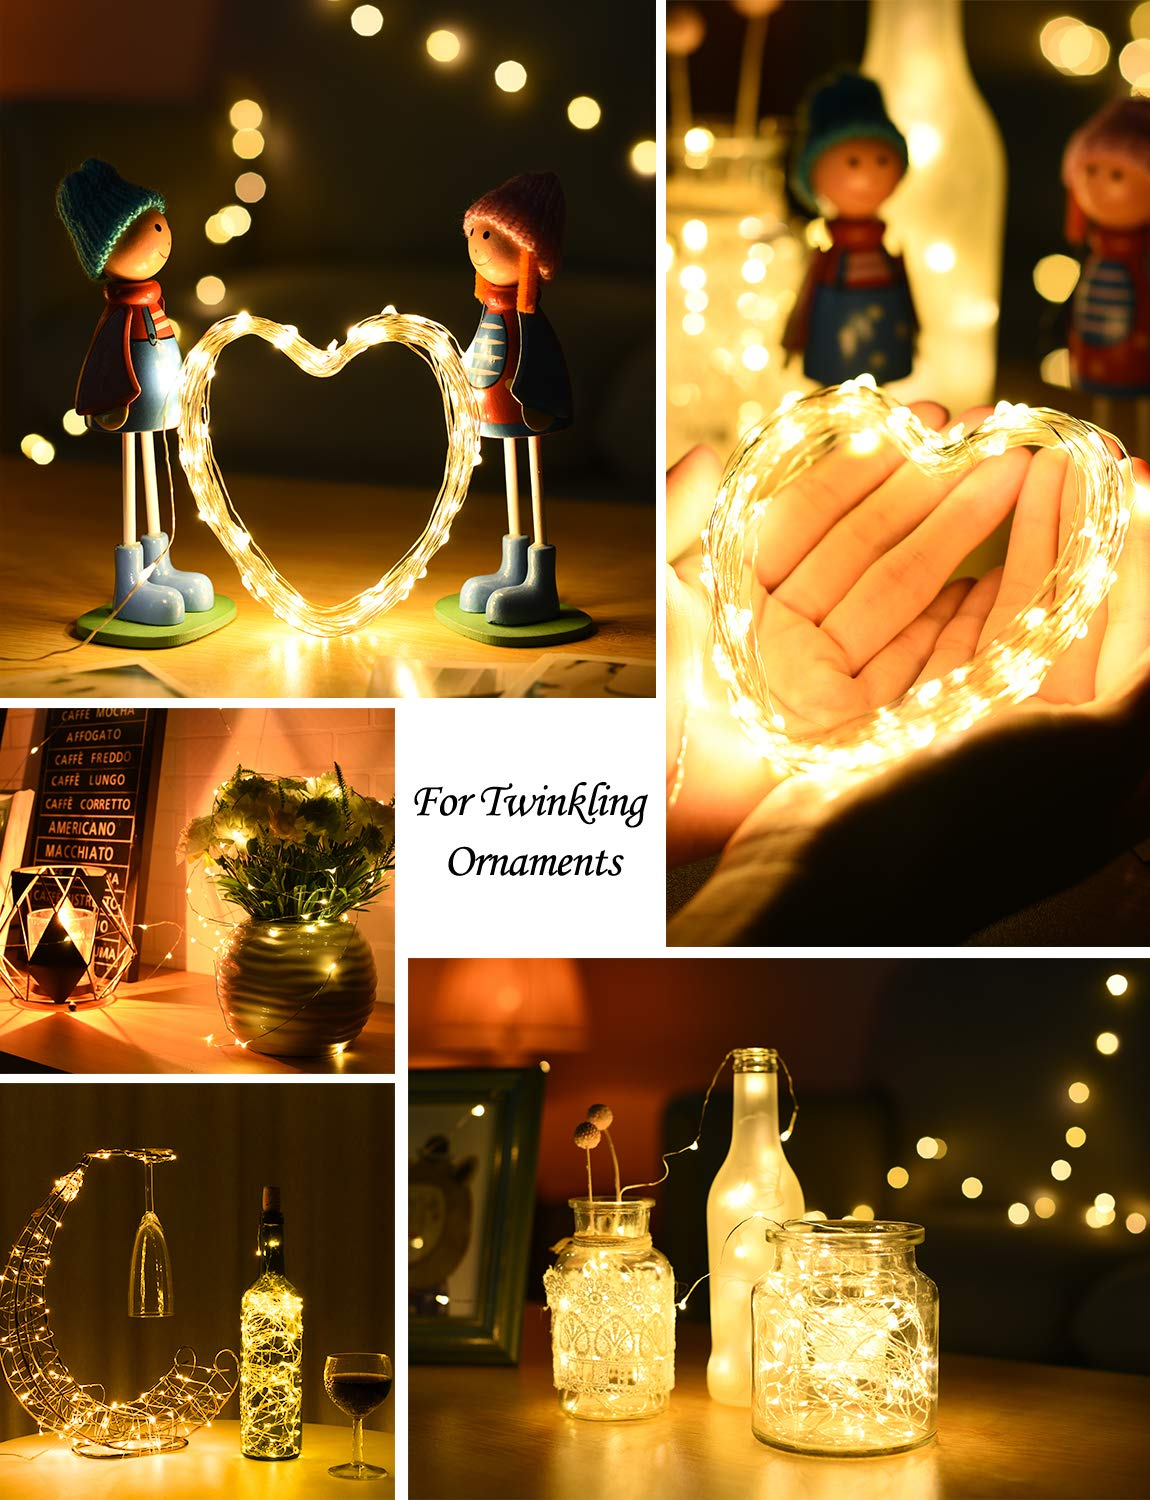 33ft Outdoor String Lights 8 Modes Waterproof Decorative Fairy Light for Patio Garden Gate Yard Party Wedding Christmas Thanksgiving Halloween 2 Pack Warm White LITOM 100 LEDs Solar String Lights